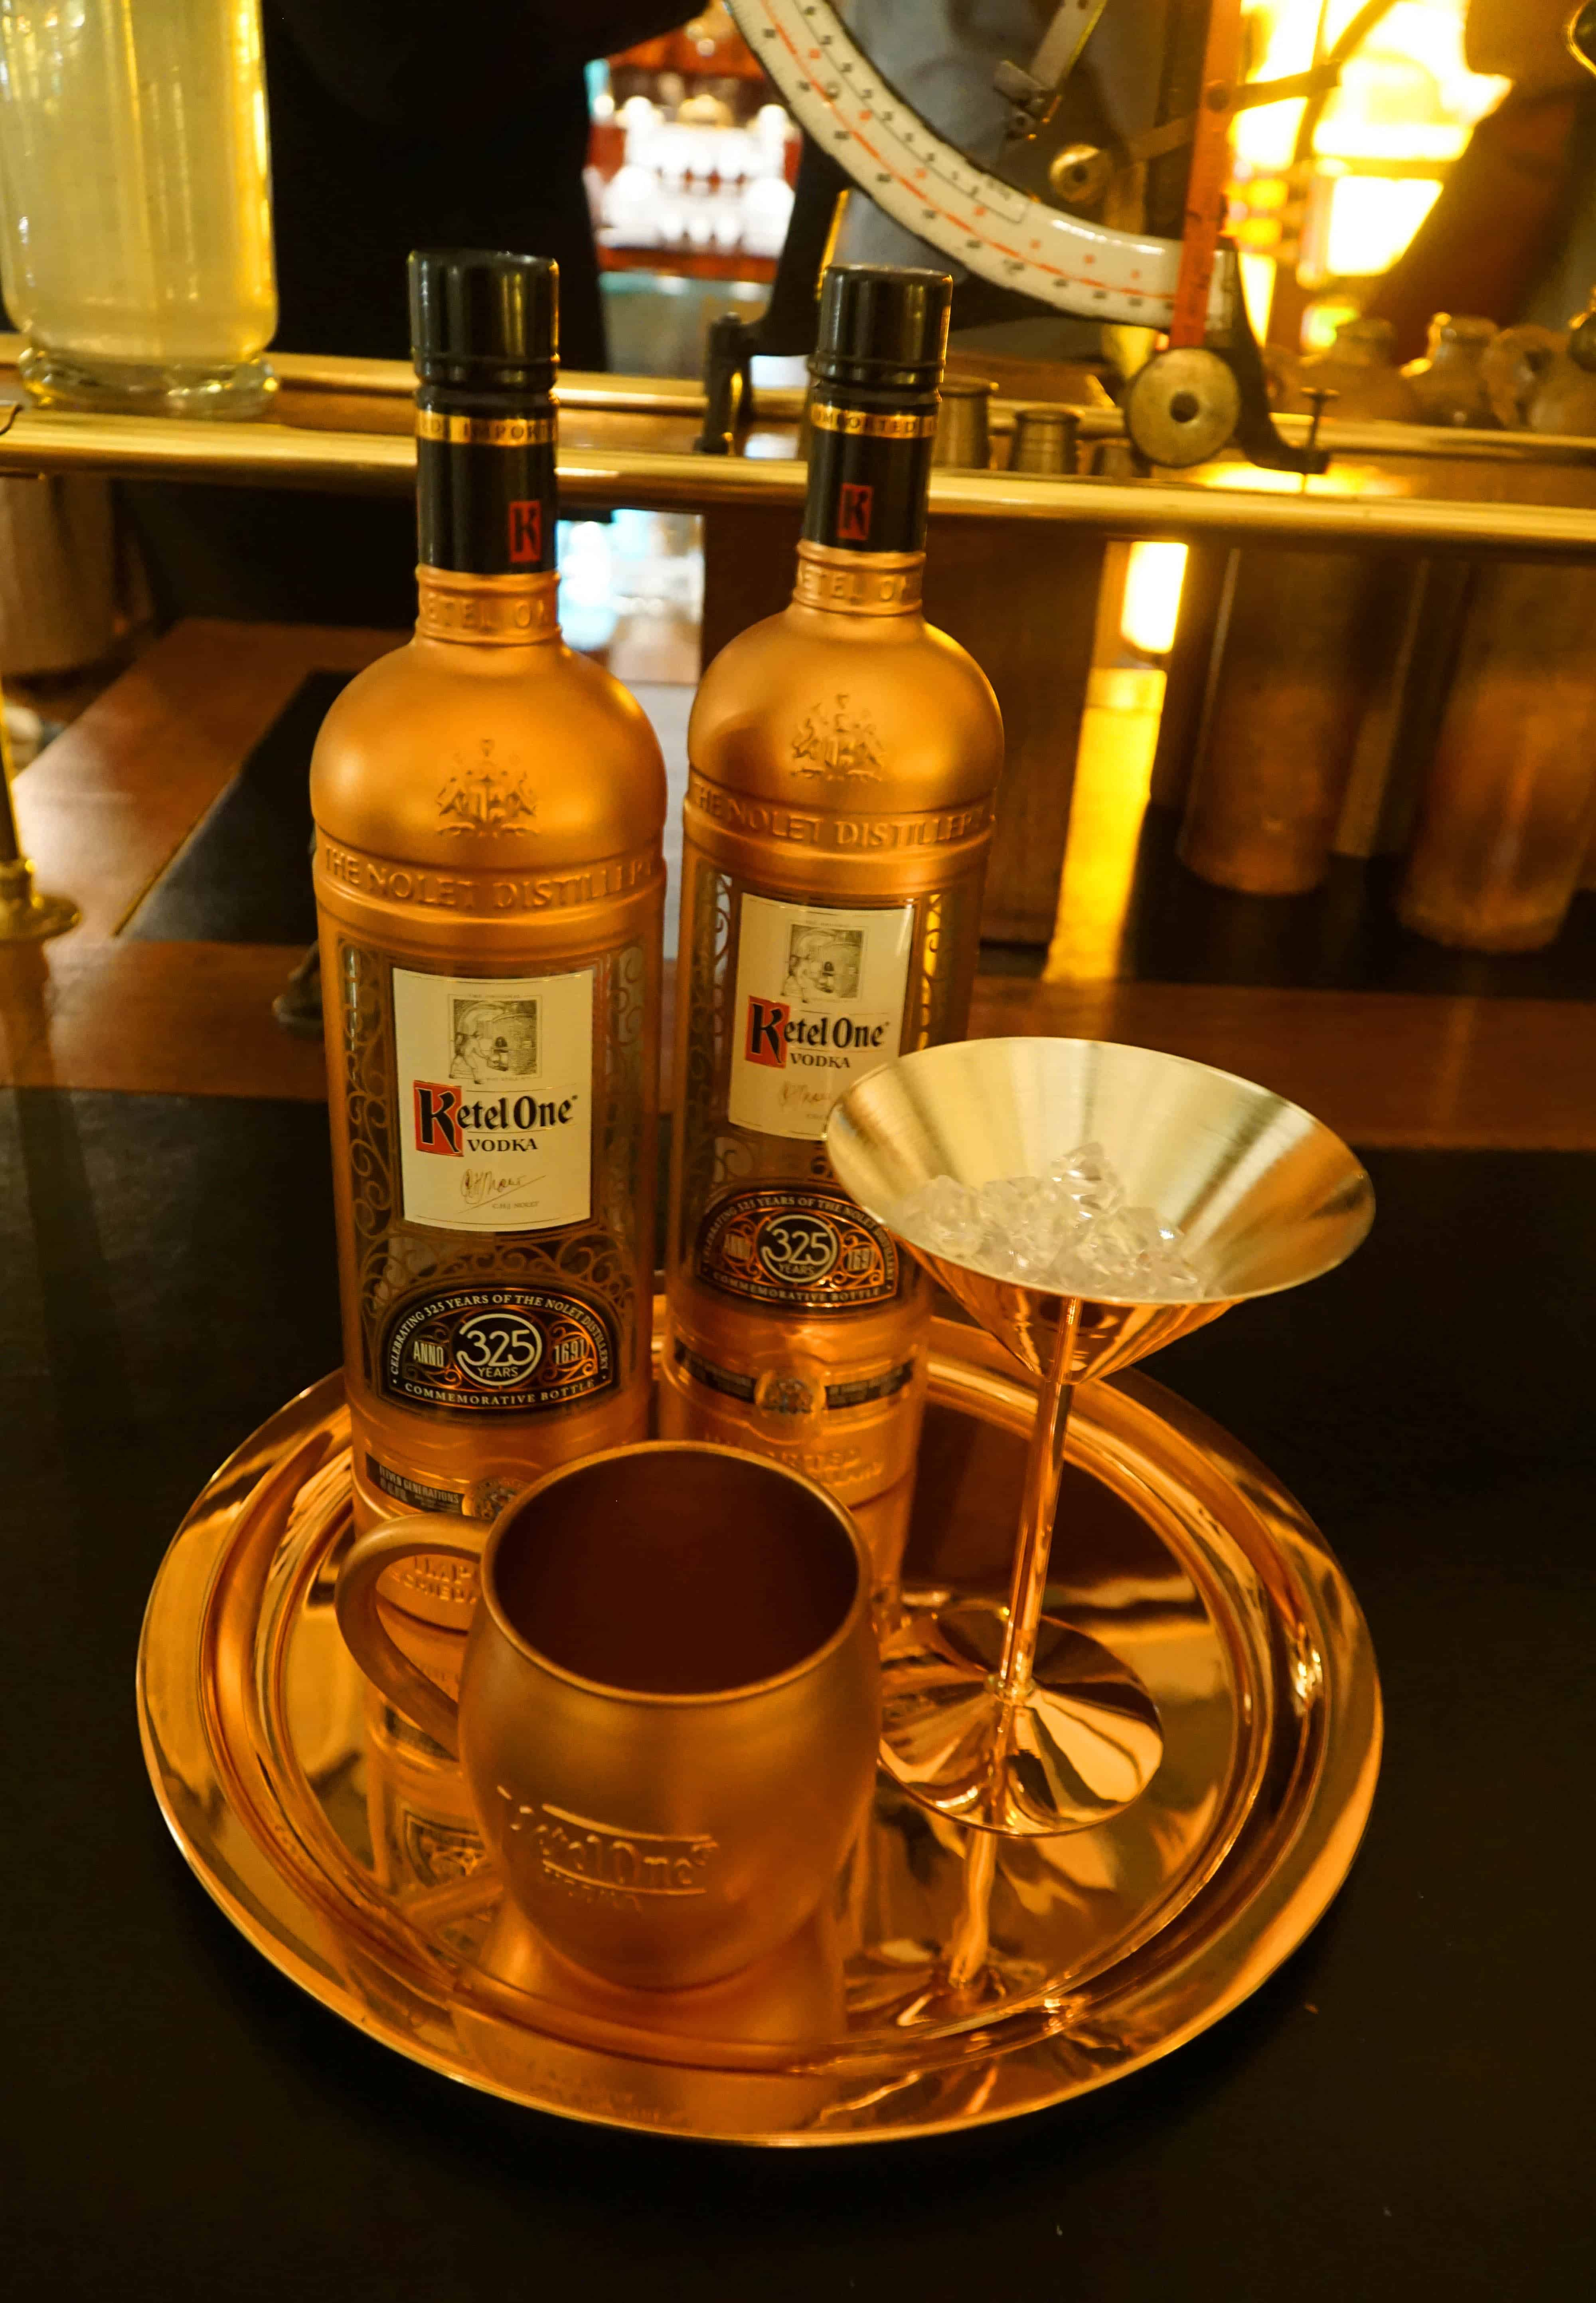 Exclusive Look Inside: The Nolet Family, Ketel One Distillery Tour in Schiedam Holland